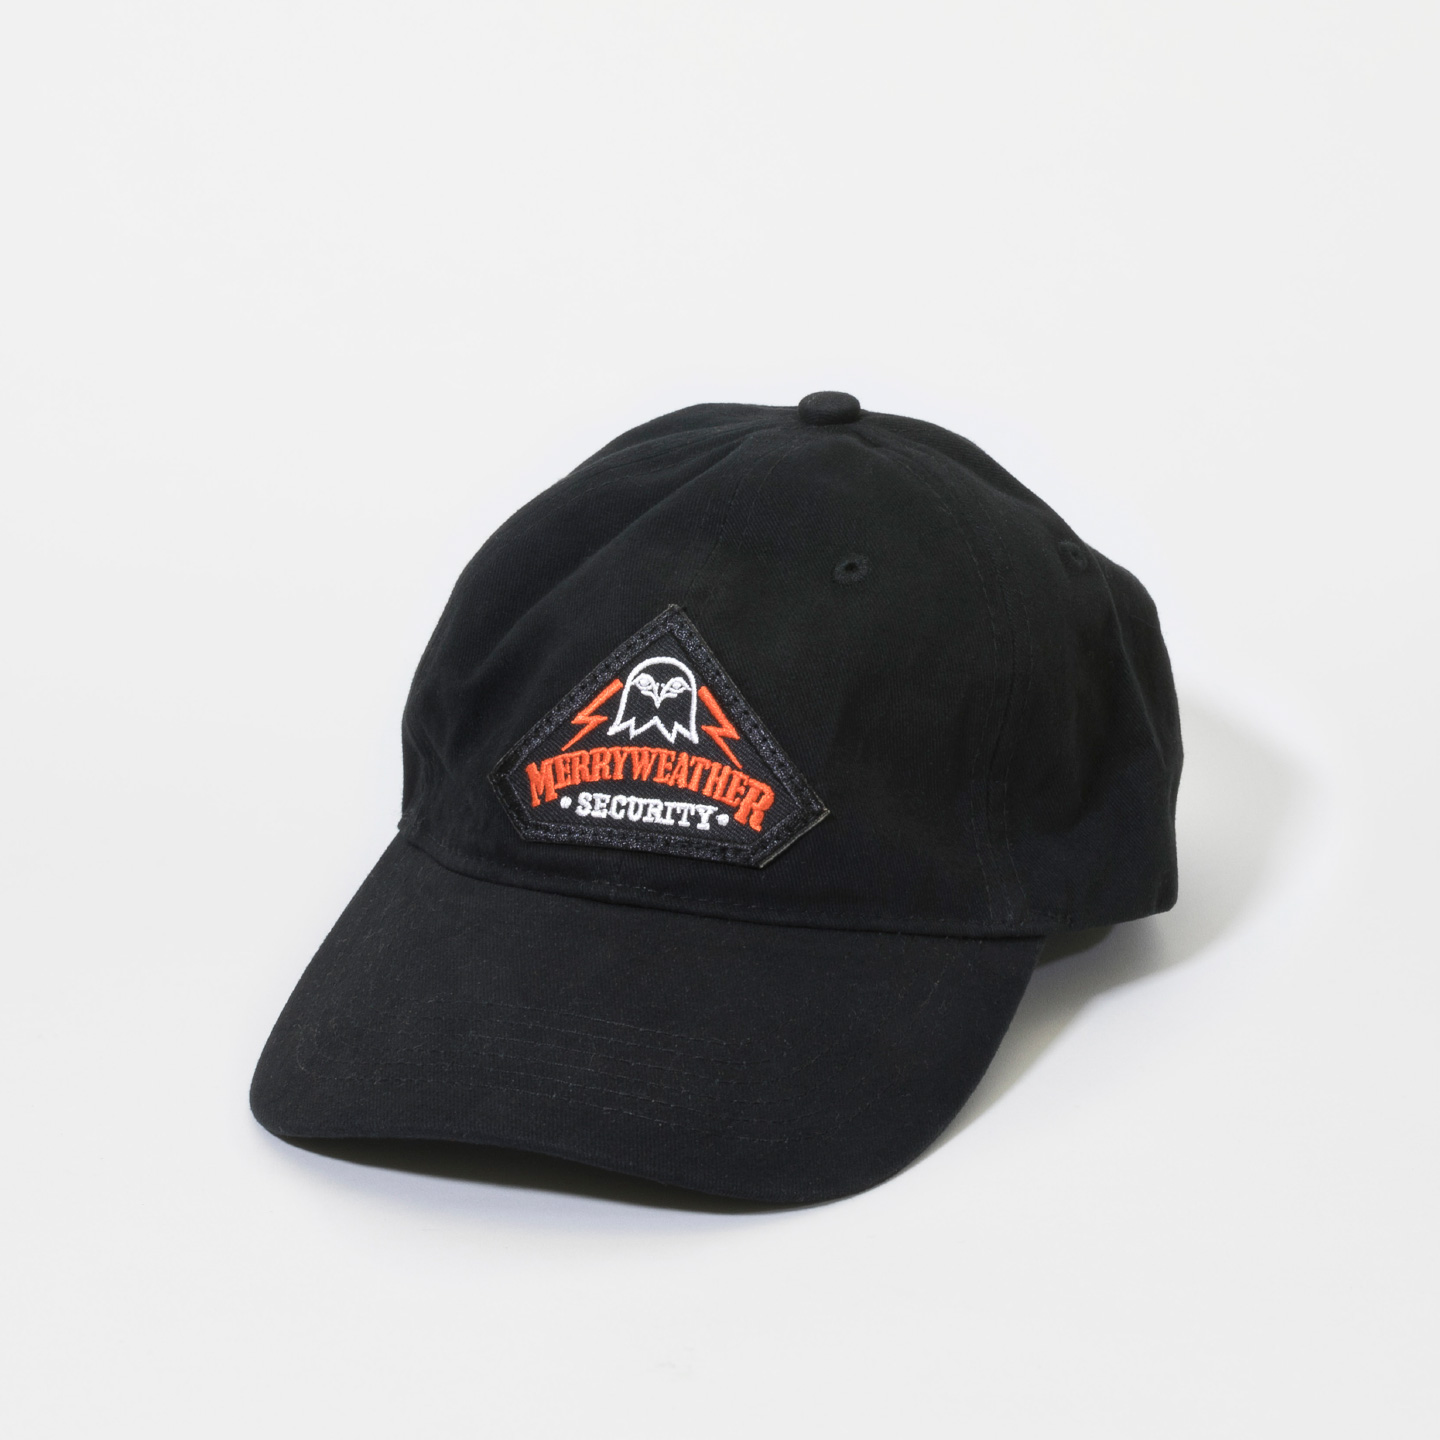 Black Merryweather Security Cap